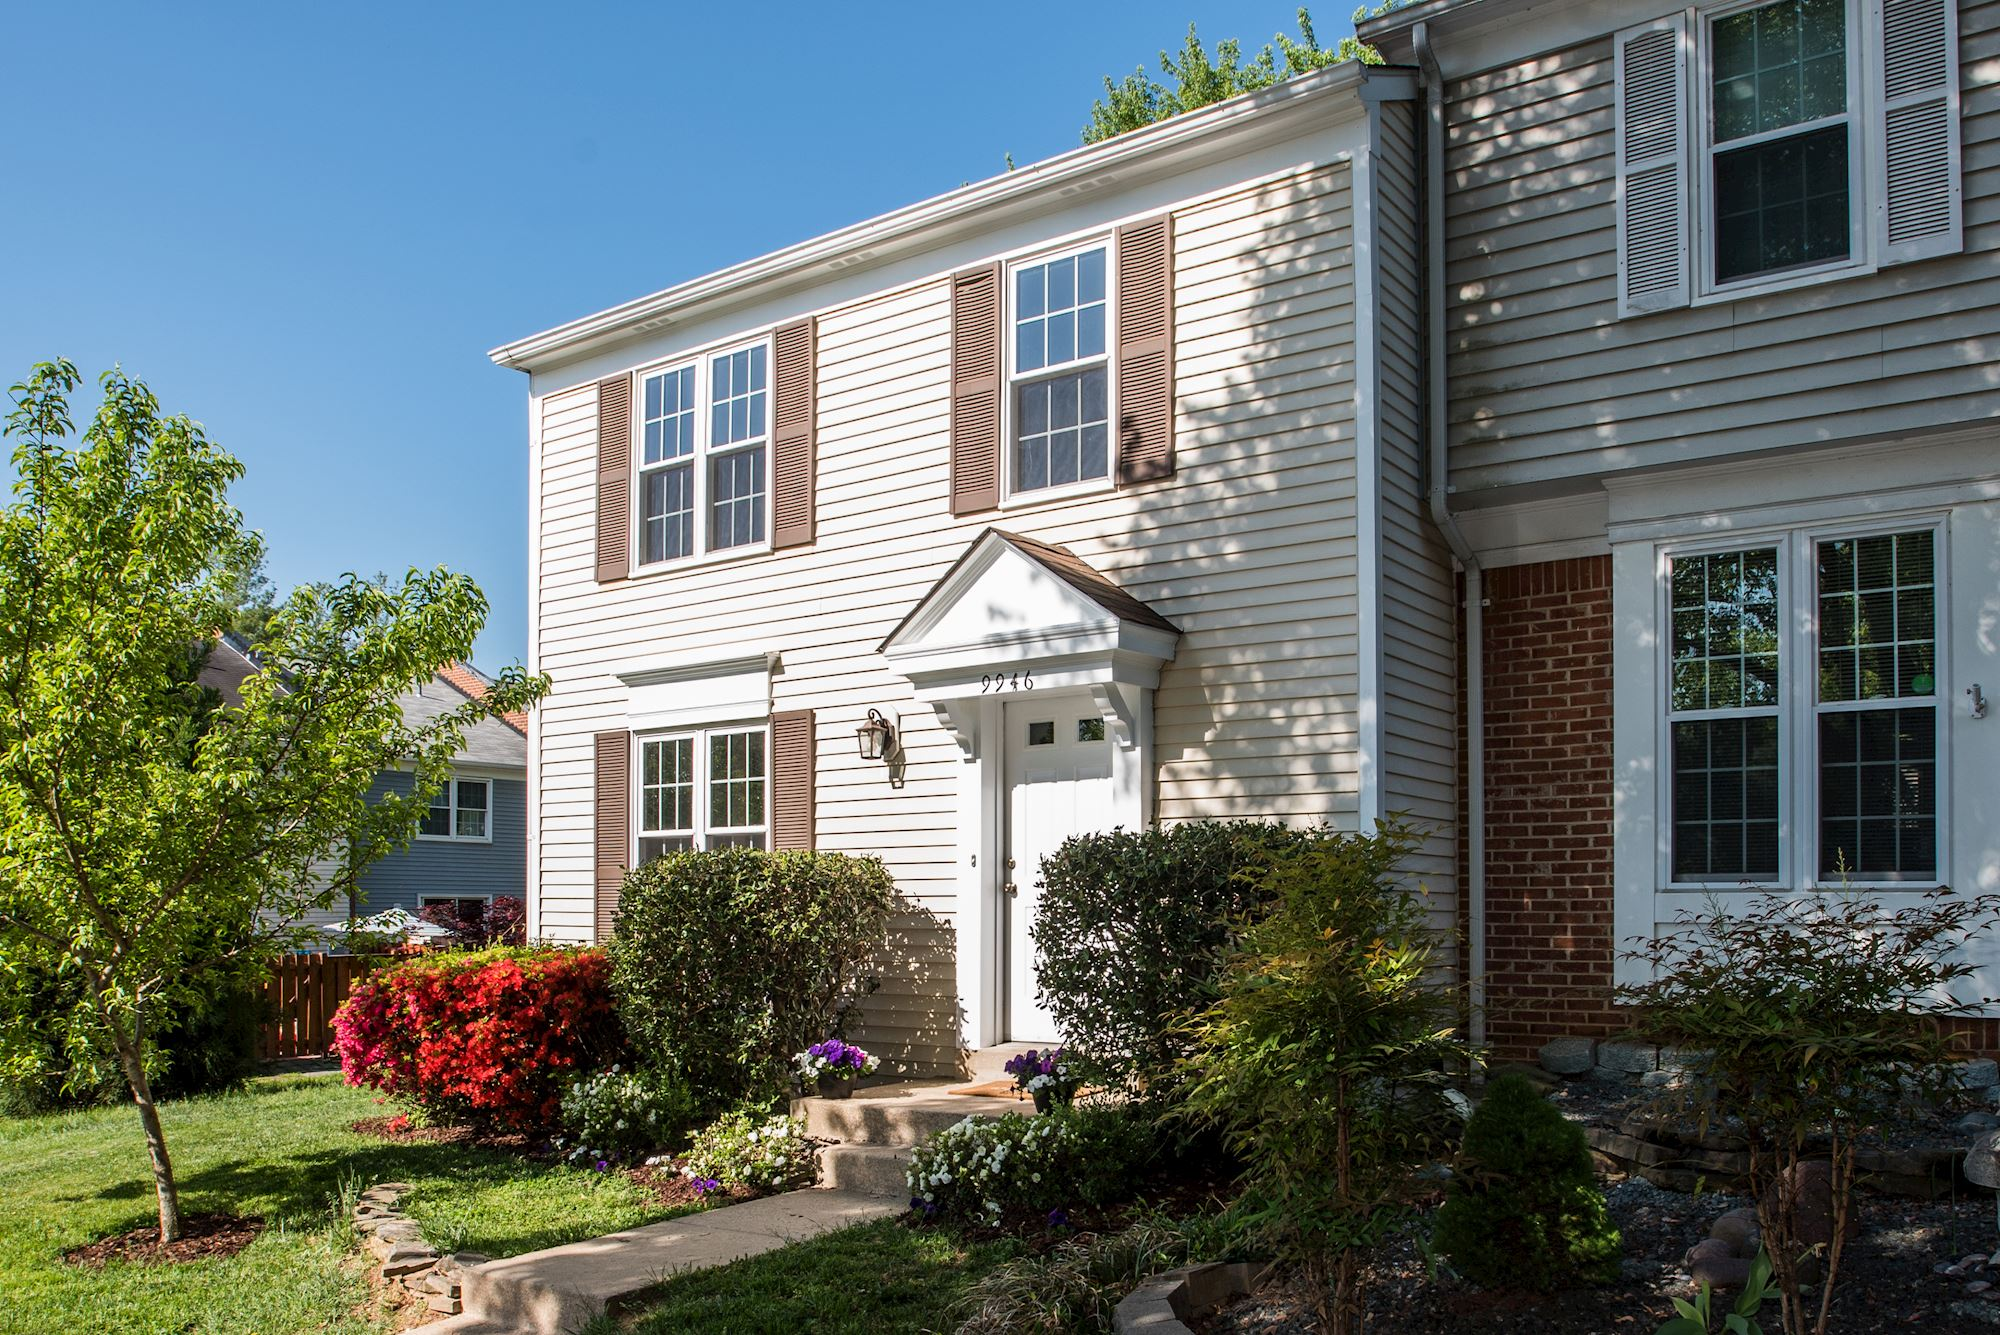 NEW LISTING: 3 BD End Unit Townhome in Heart of Burke Centre